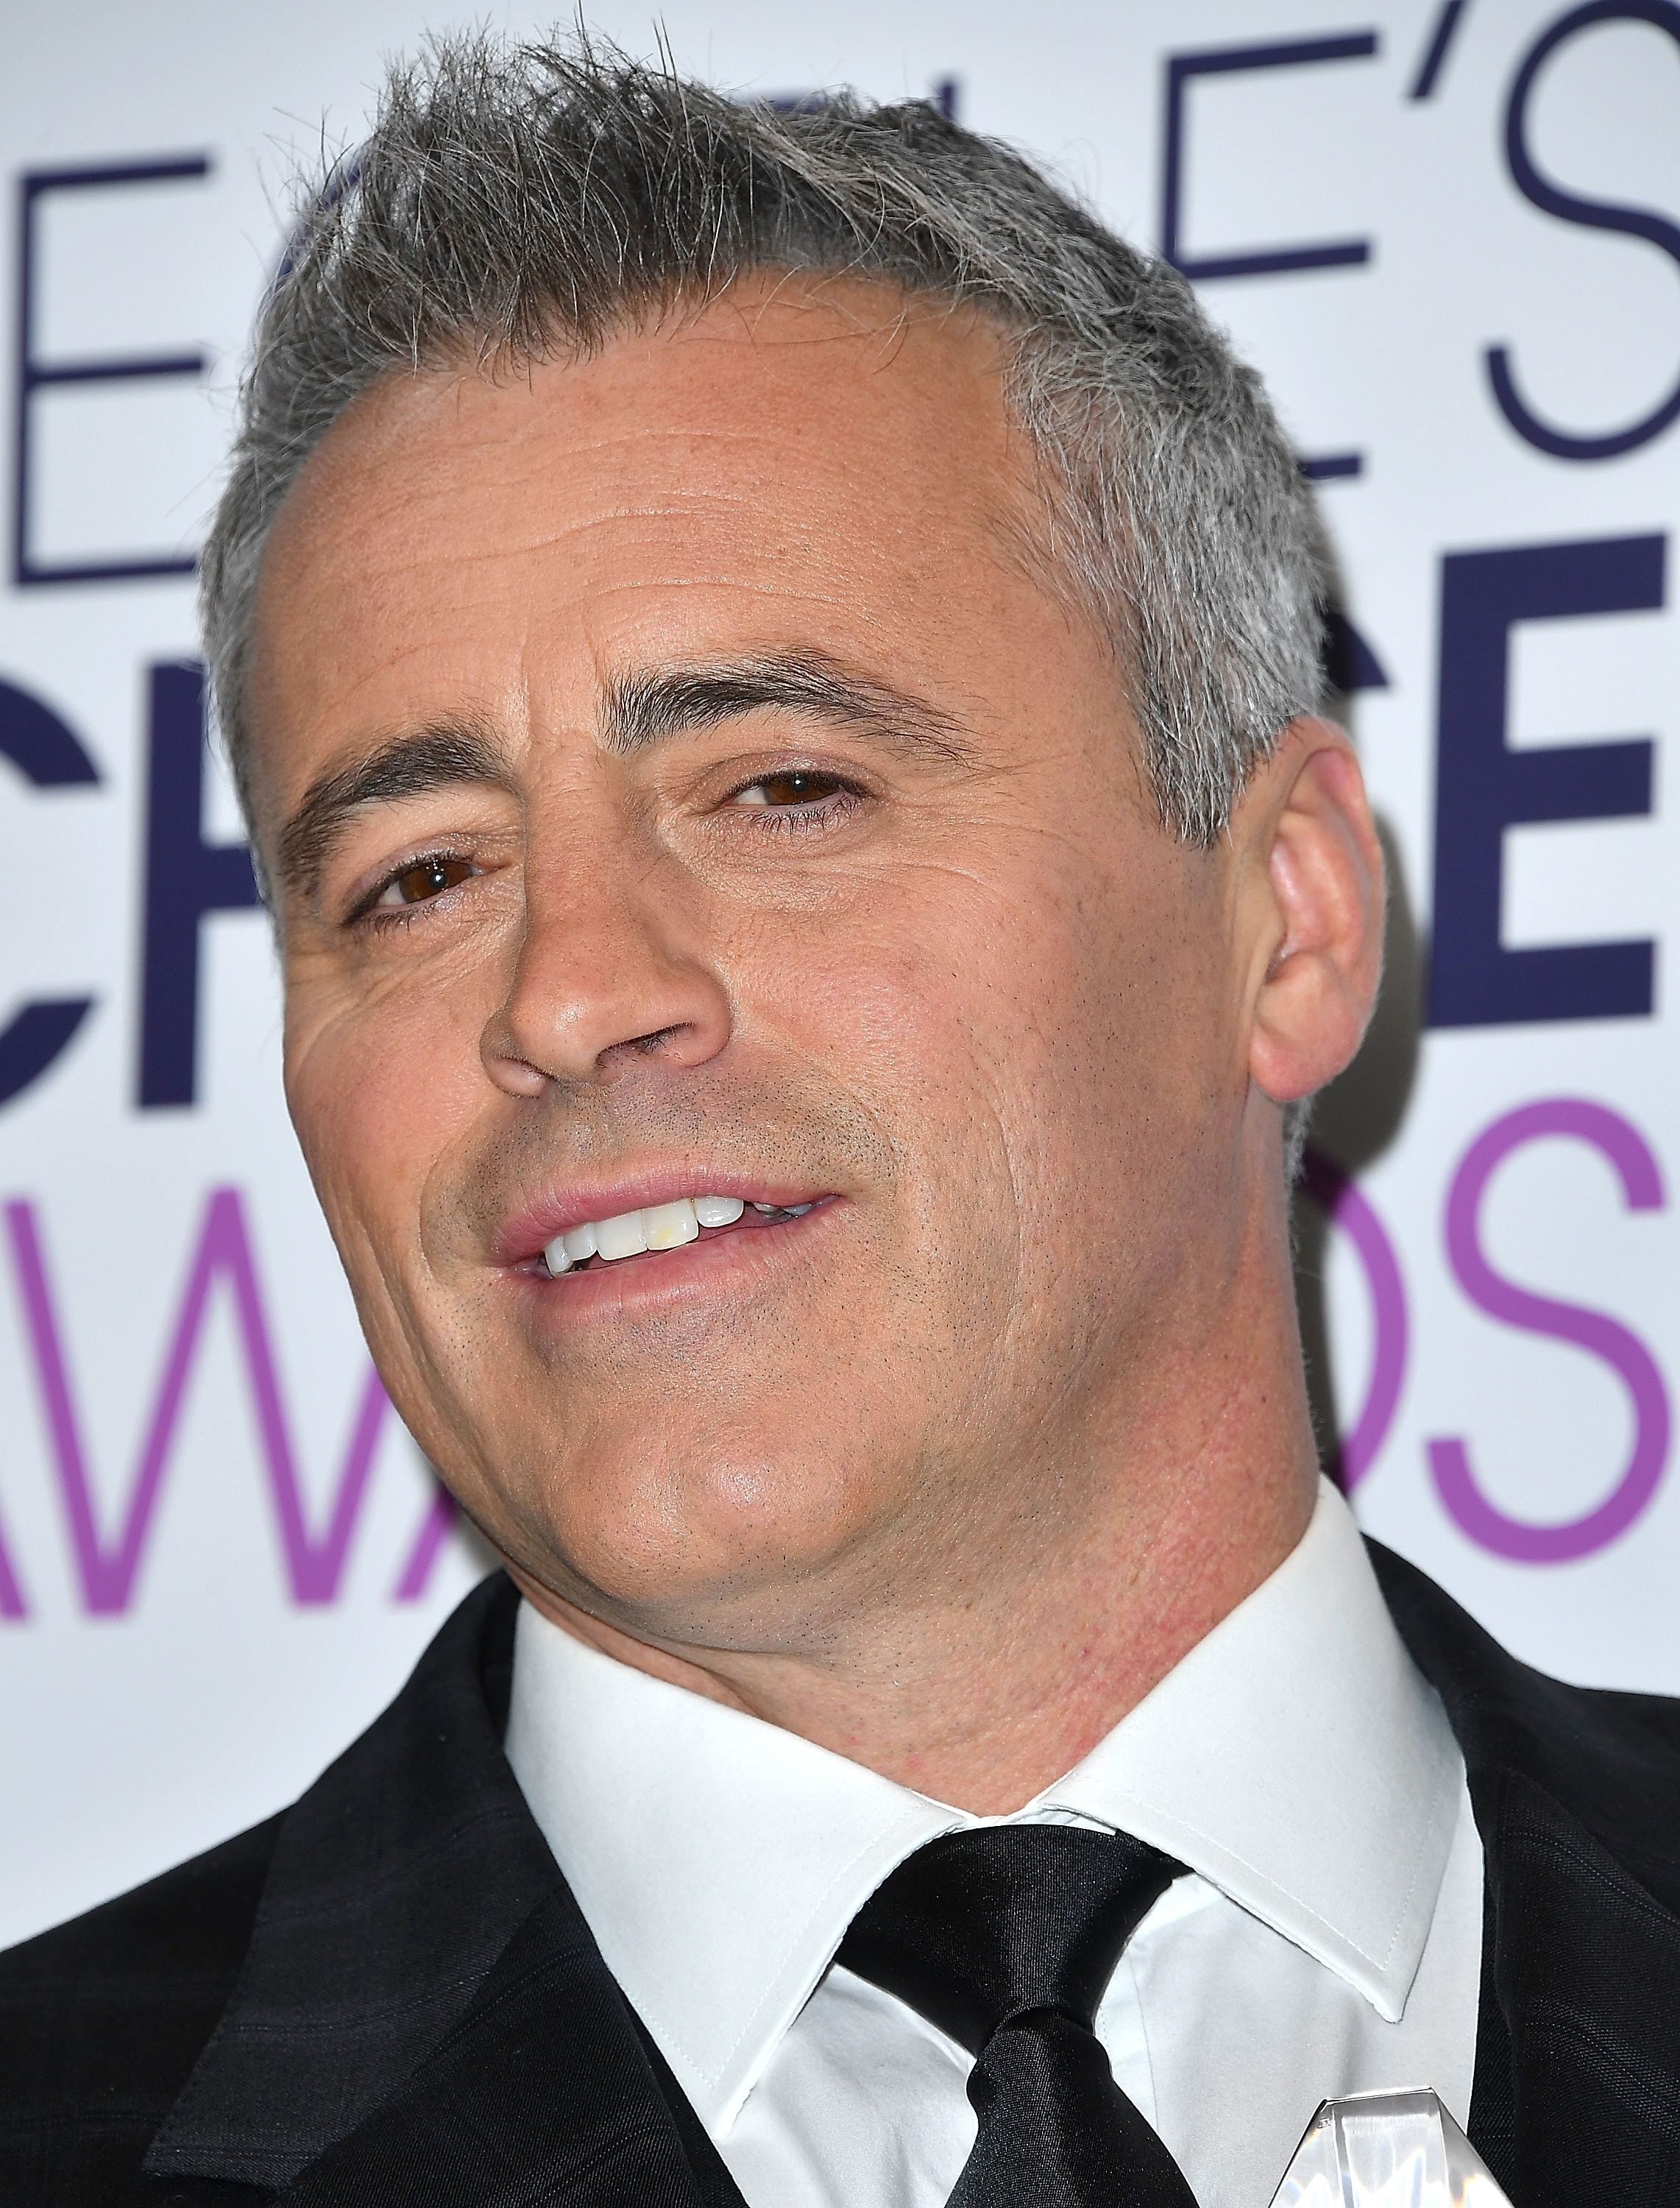 Matt LeBlanc Reveals The Harshest Wakeup Call He Received From A